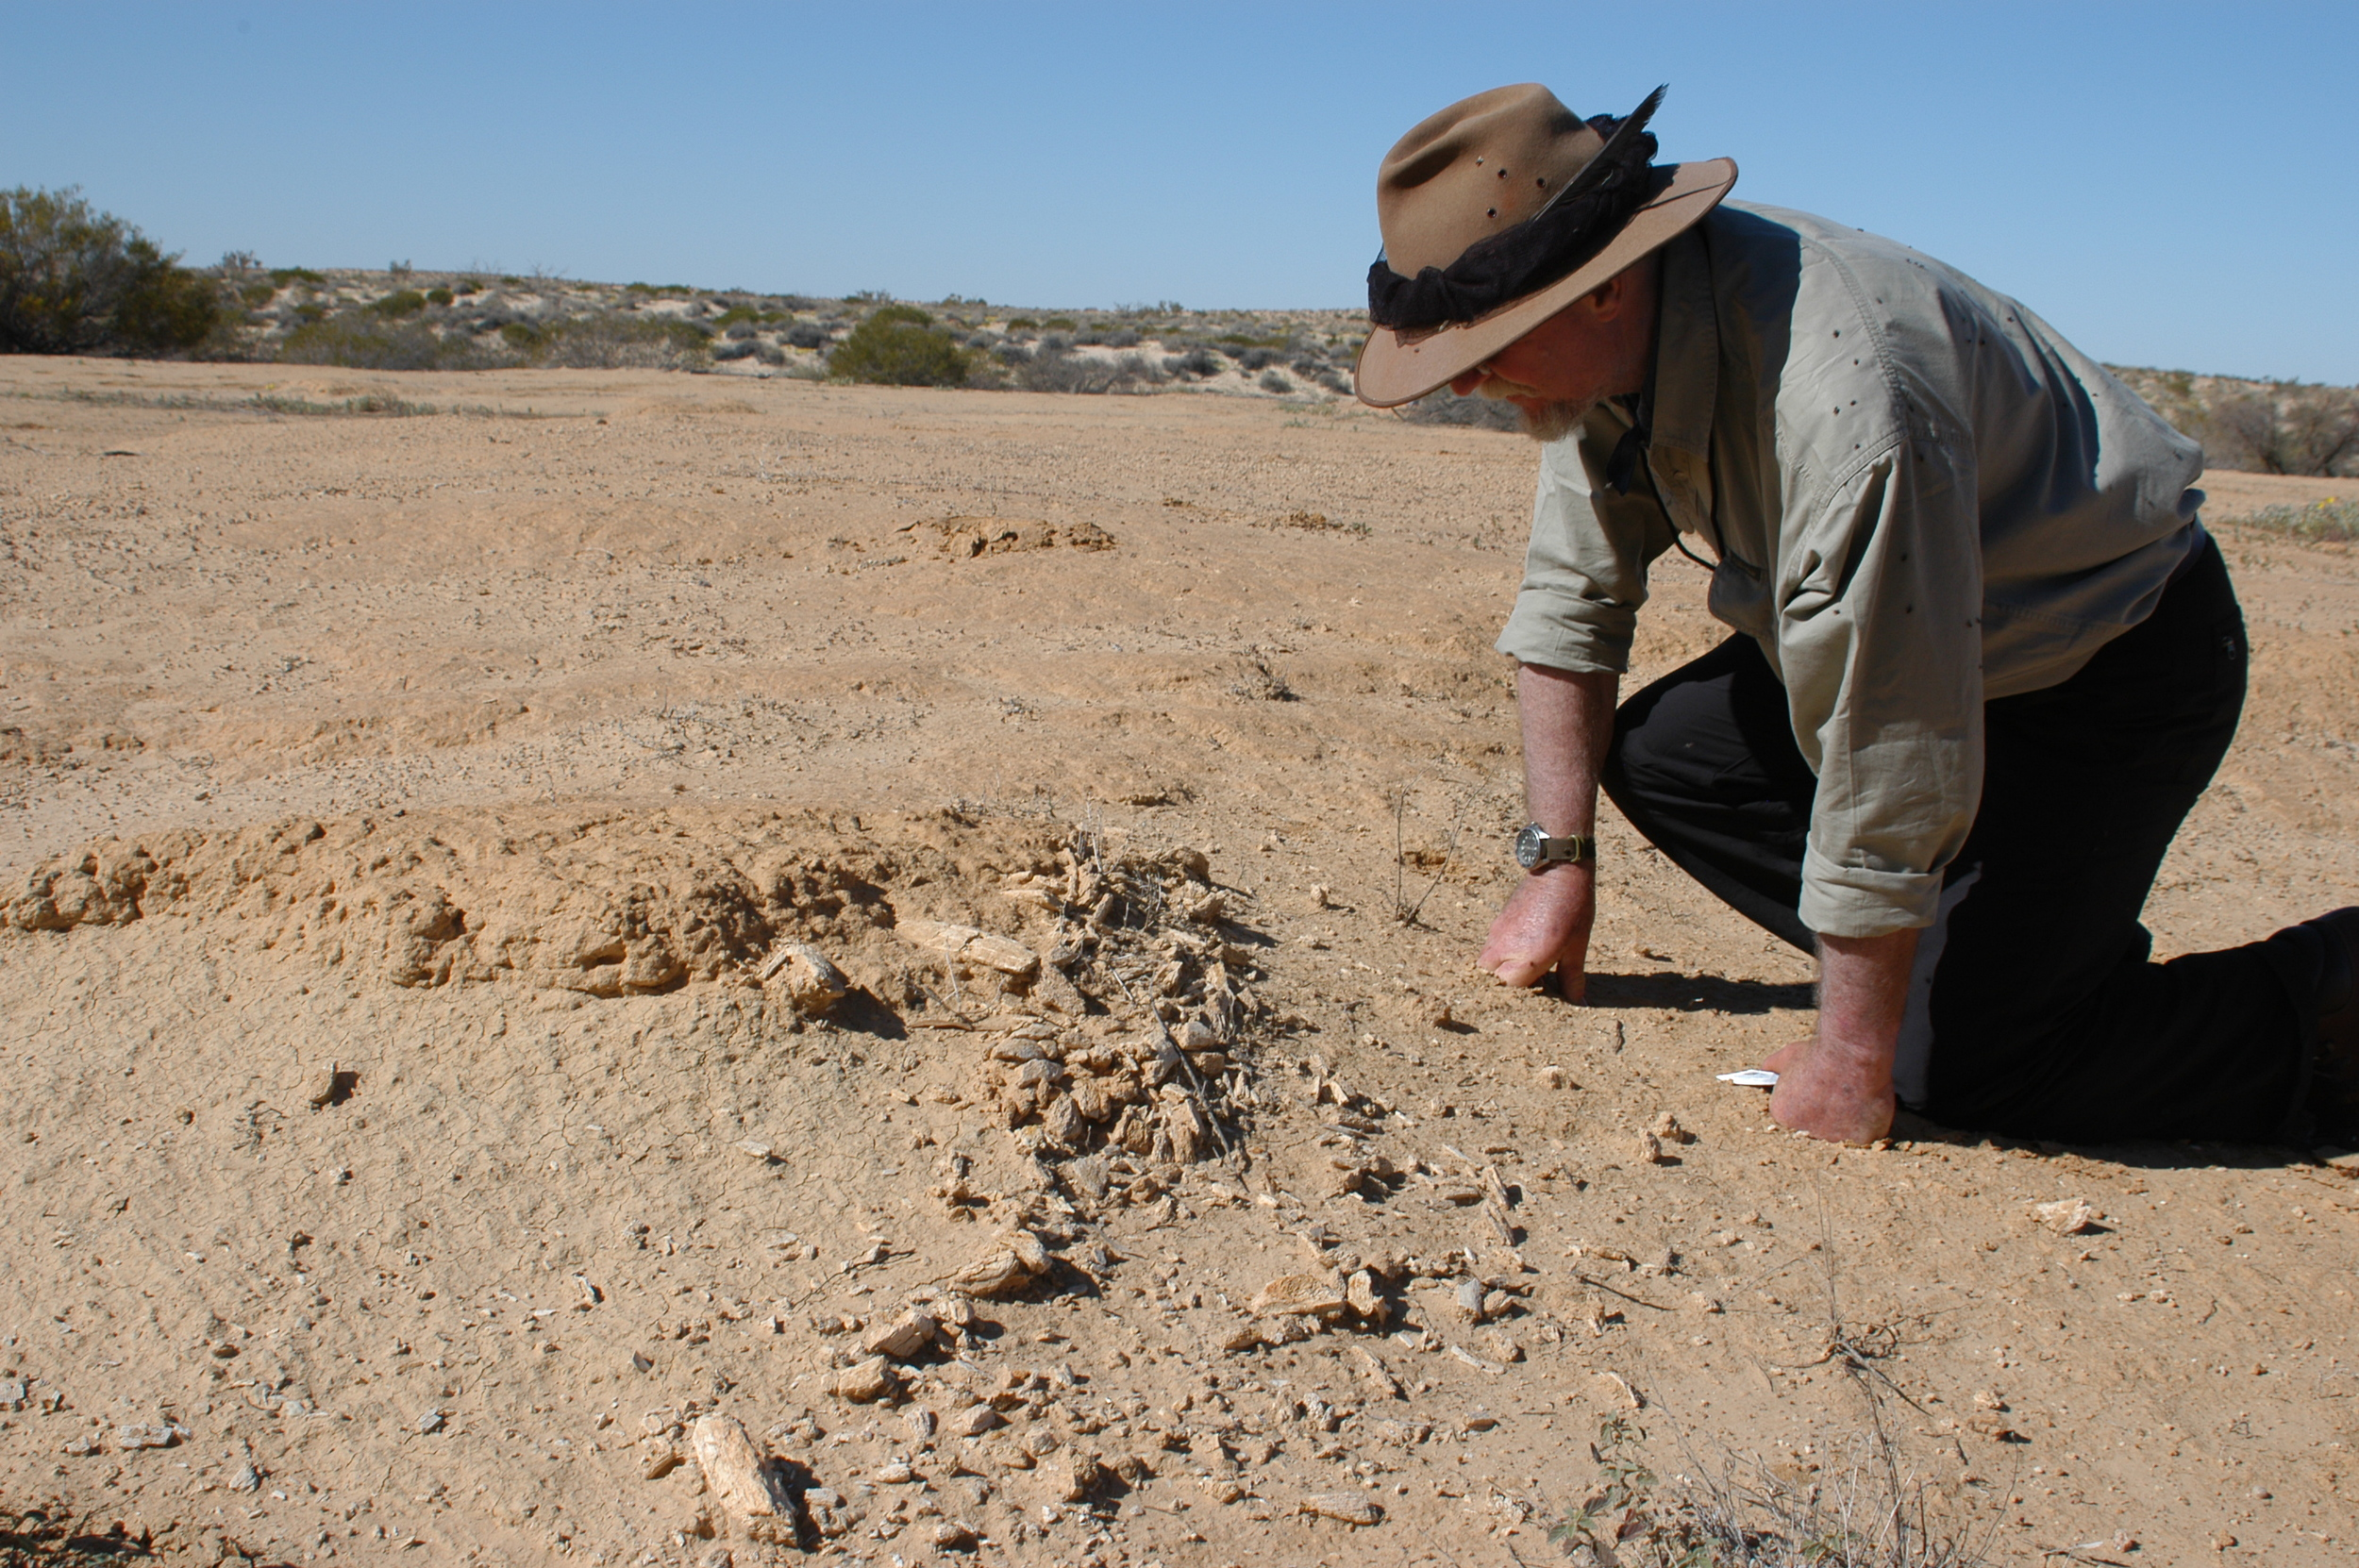 Inspecting another fossil discovery.